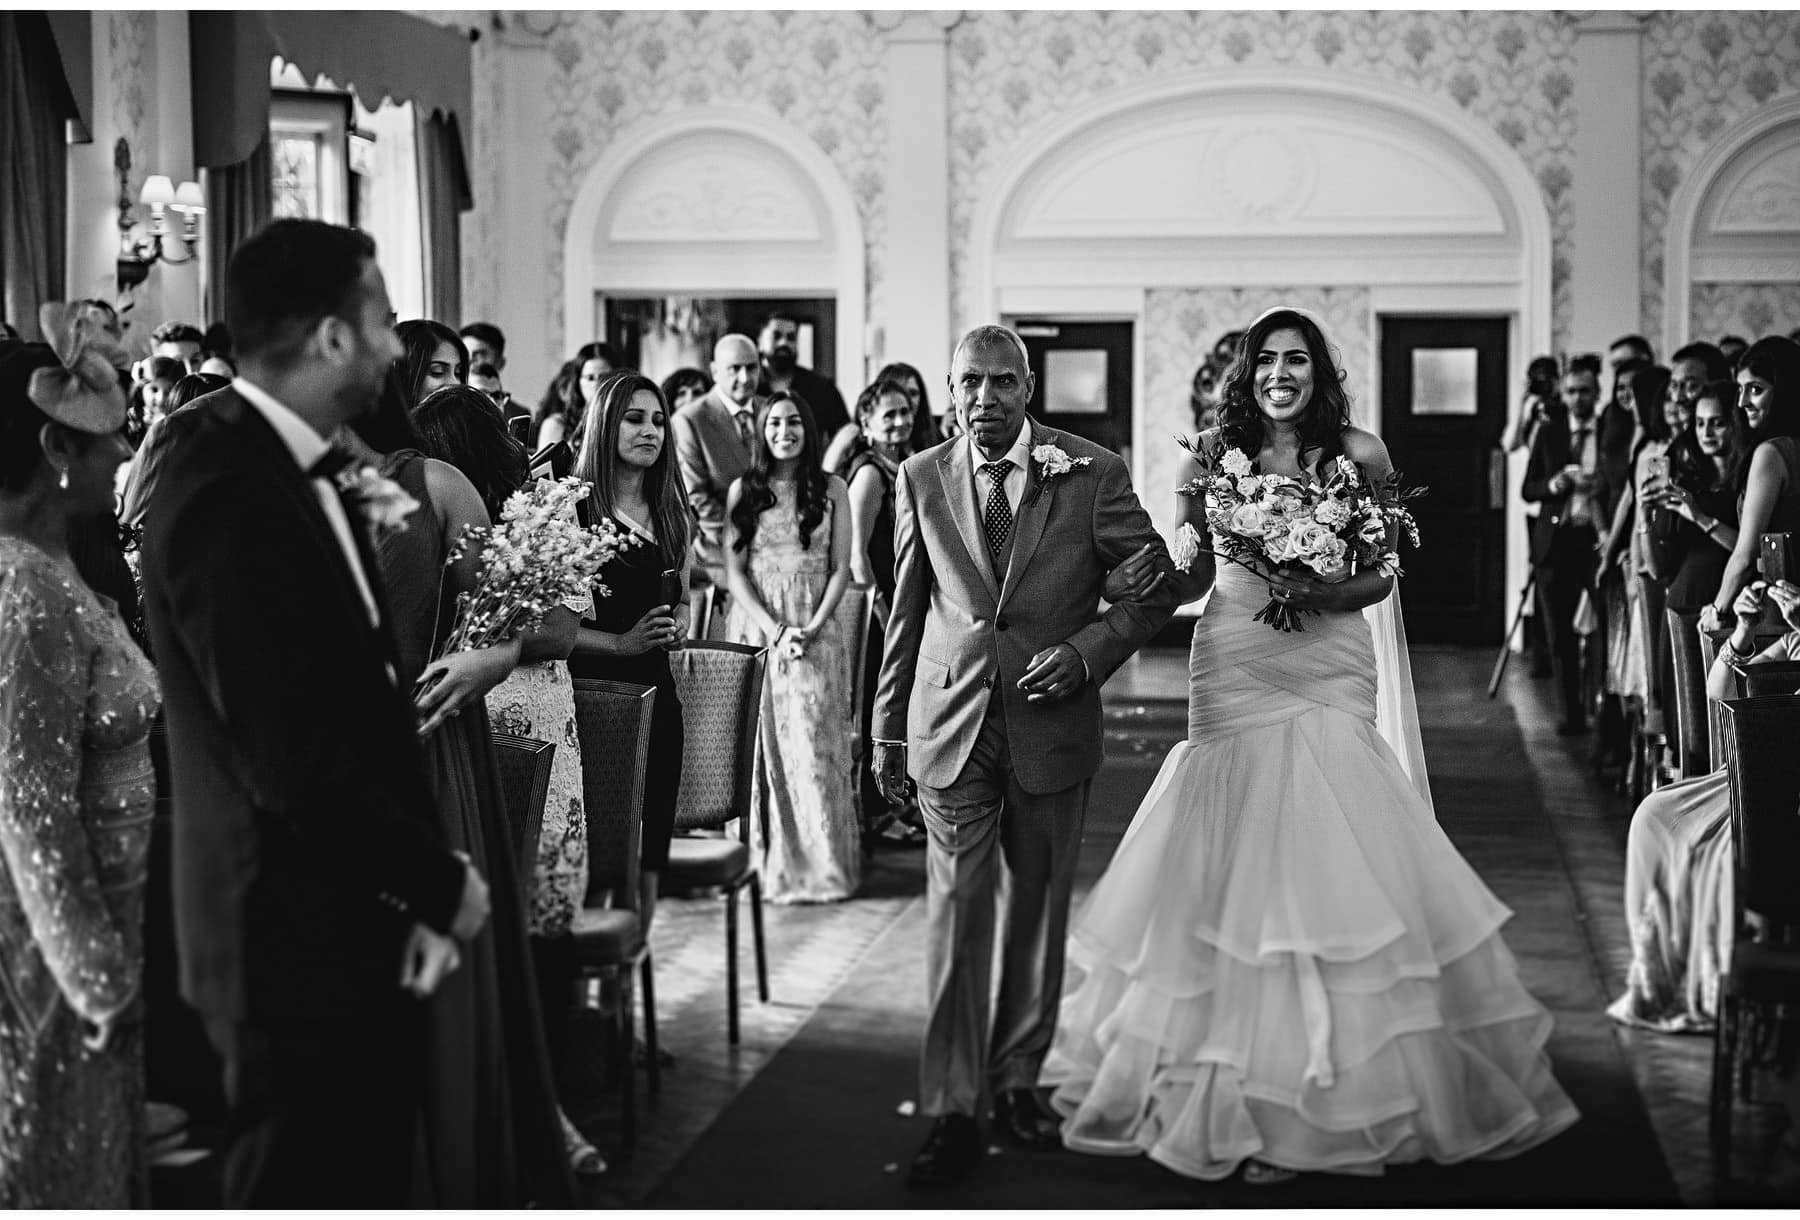 the bride and her dad walking down the aisle